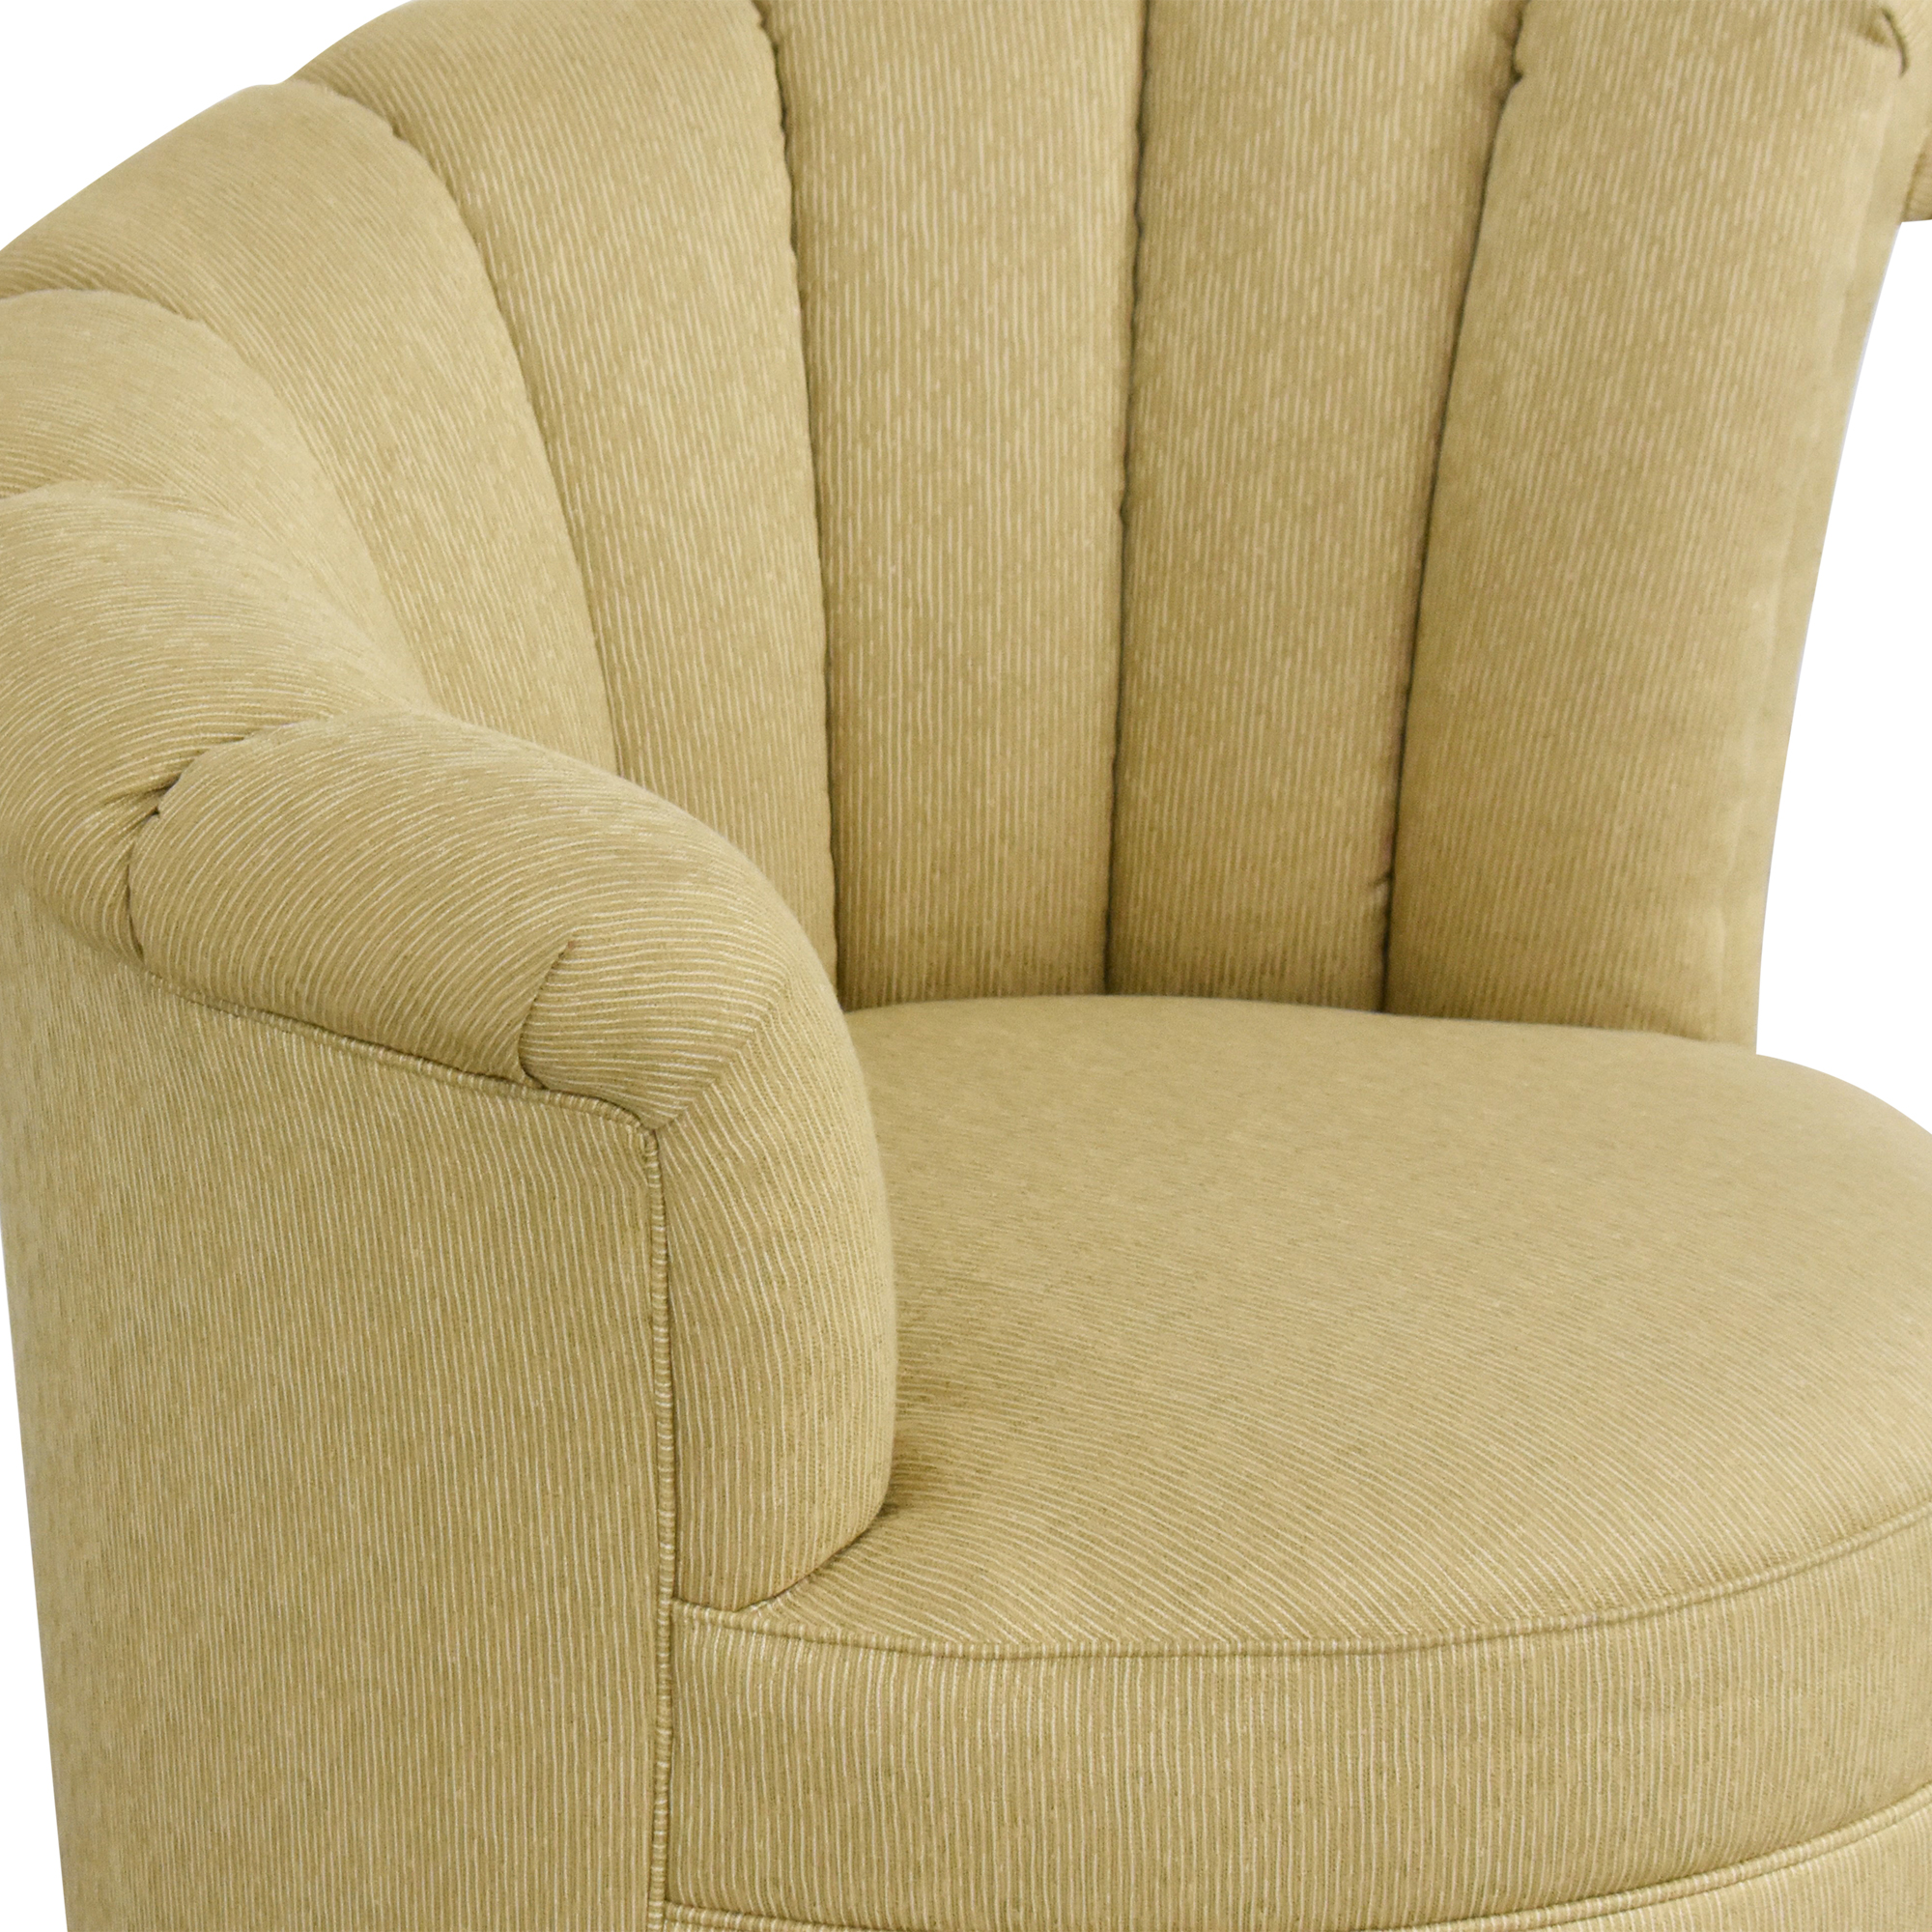 Thomasville Thomasville Starlet Left Arm Swivel Chair Accent Chairs